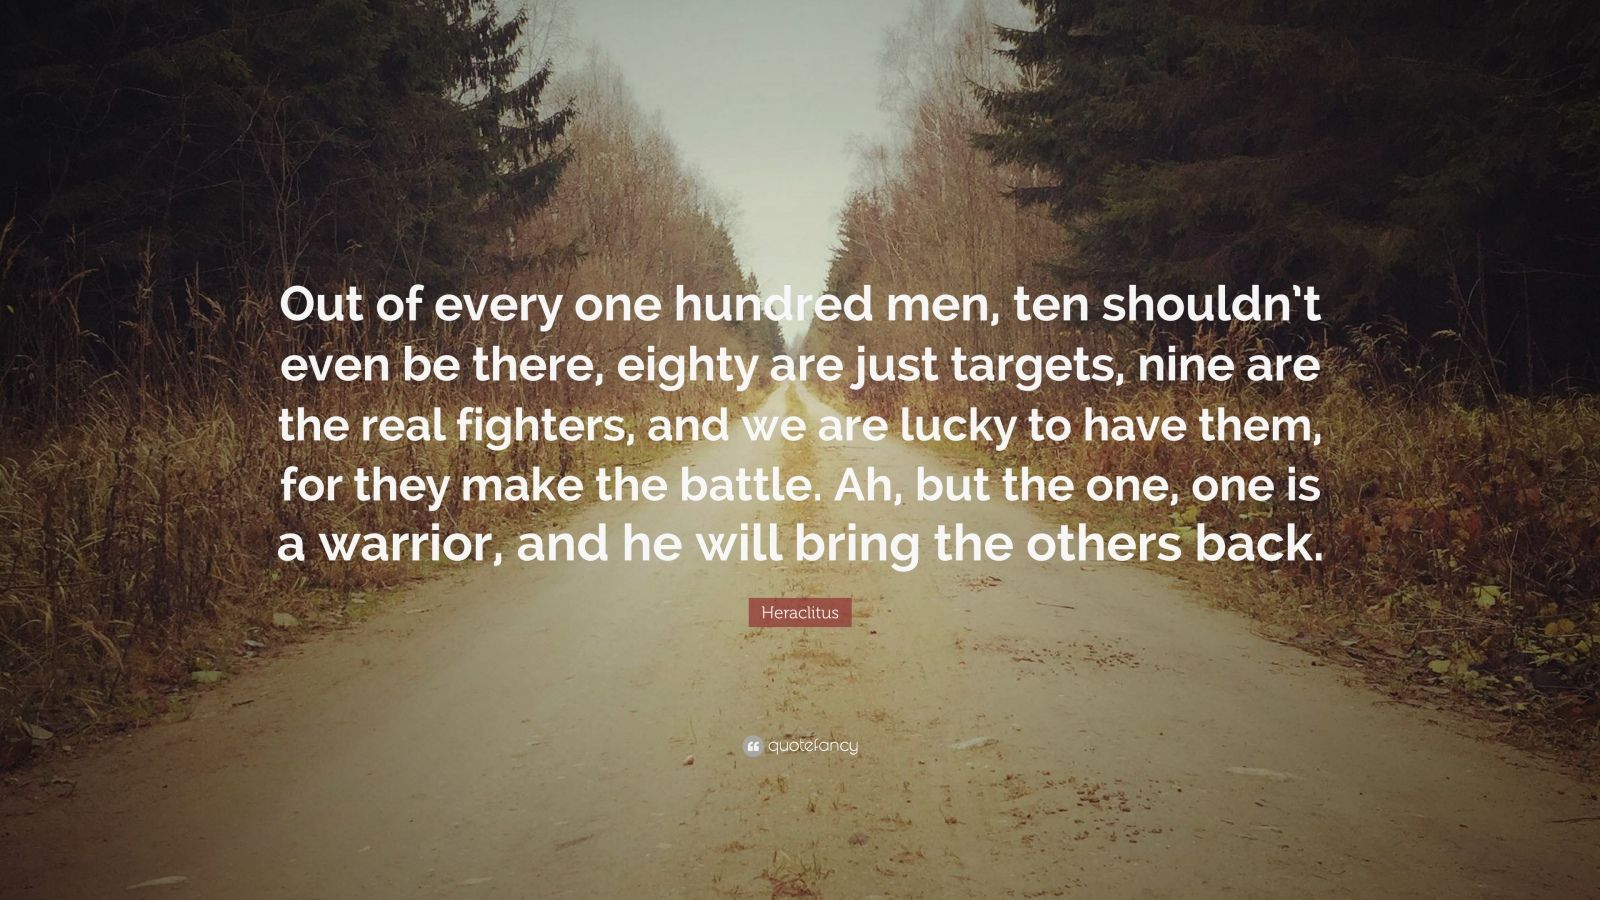 "Heraclitus Quote: ""Out of every one hundred men, ten shouldn't even be there, eighty are just targets, nine are the real fighters, and we are lucky to have them, for they make the battle. Ah, but the one, one is a warrior, and he will bring the others back."""